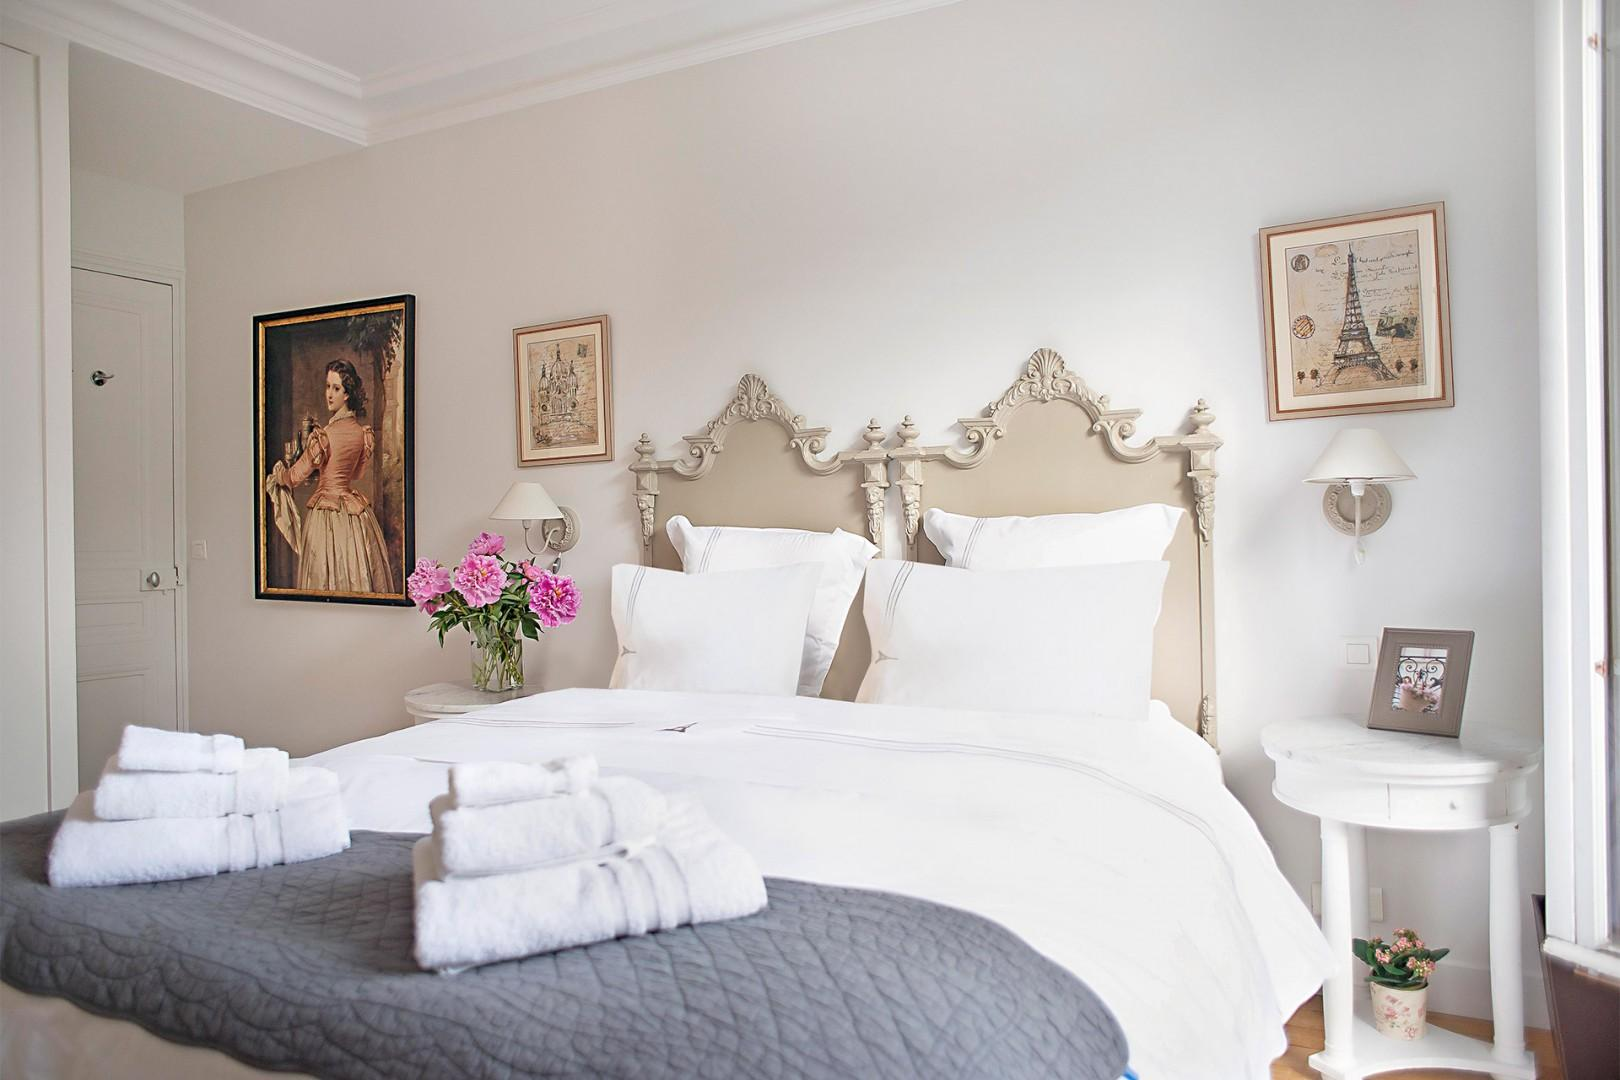 The elegant French décor truly makes you feel like you're in Paris.